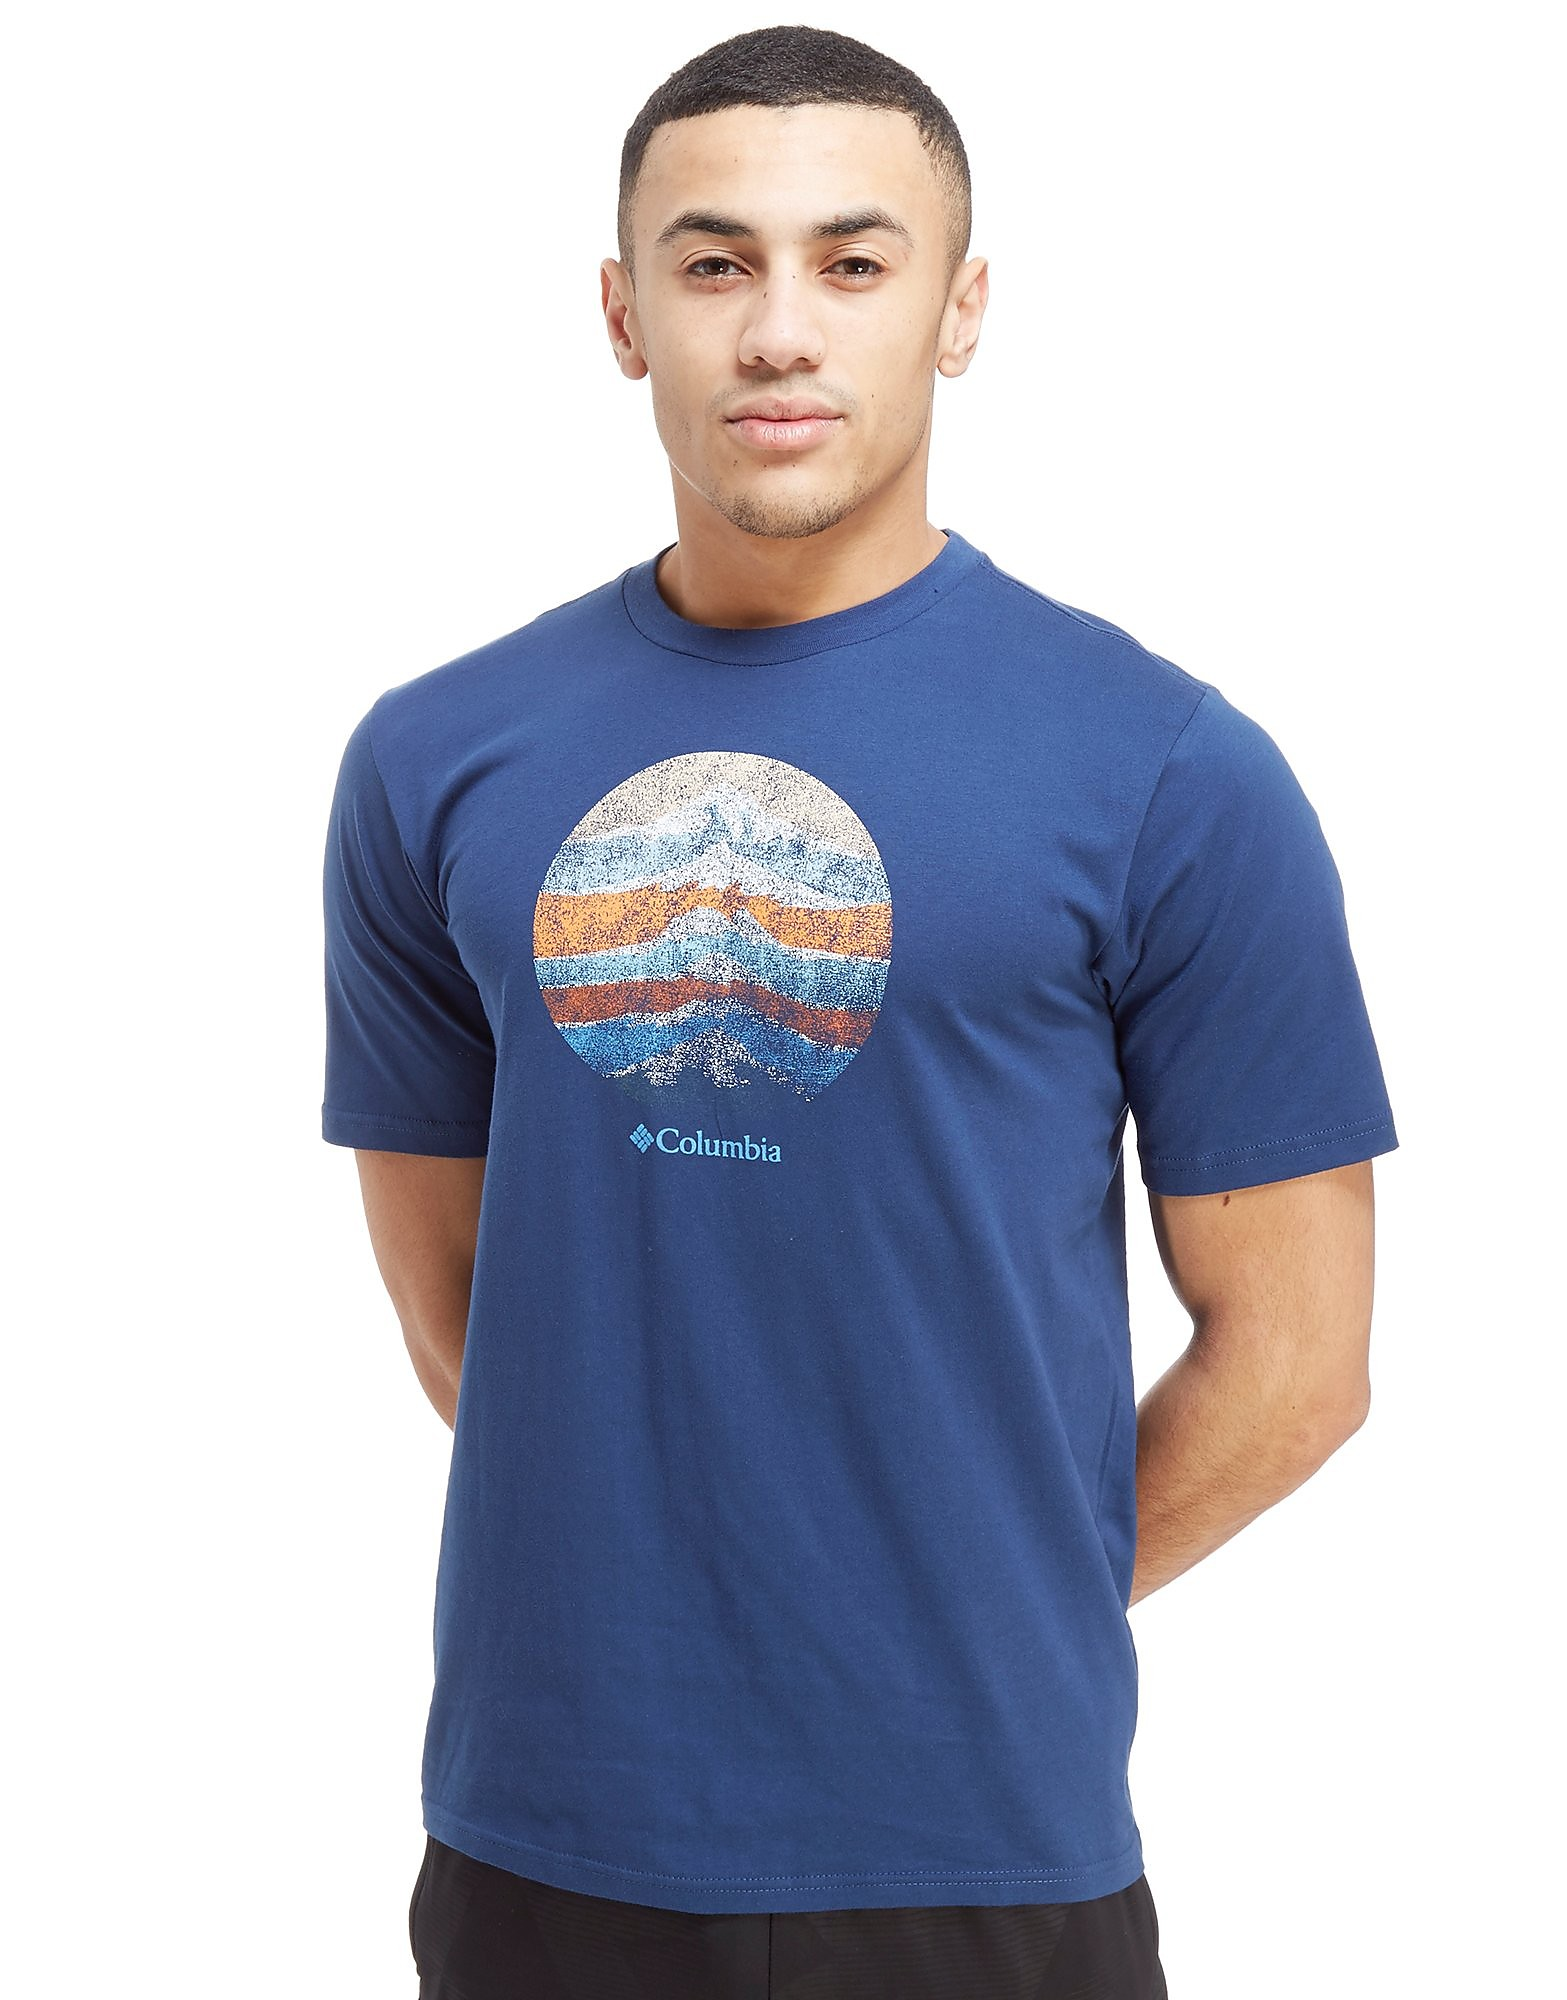 Columbia Short Sleeve Mountain Logo T-Shirt